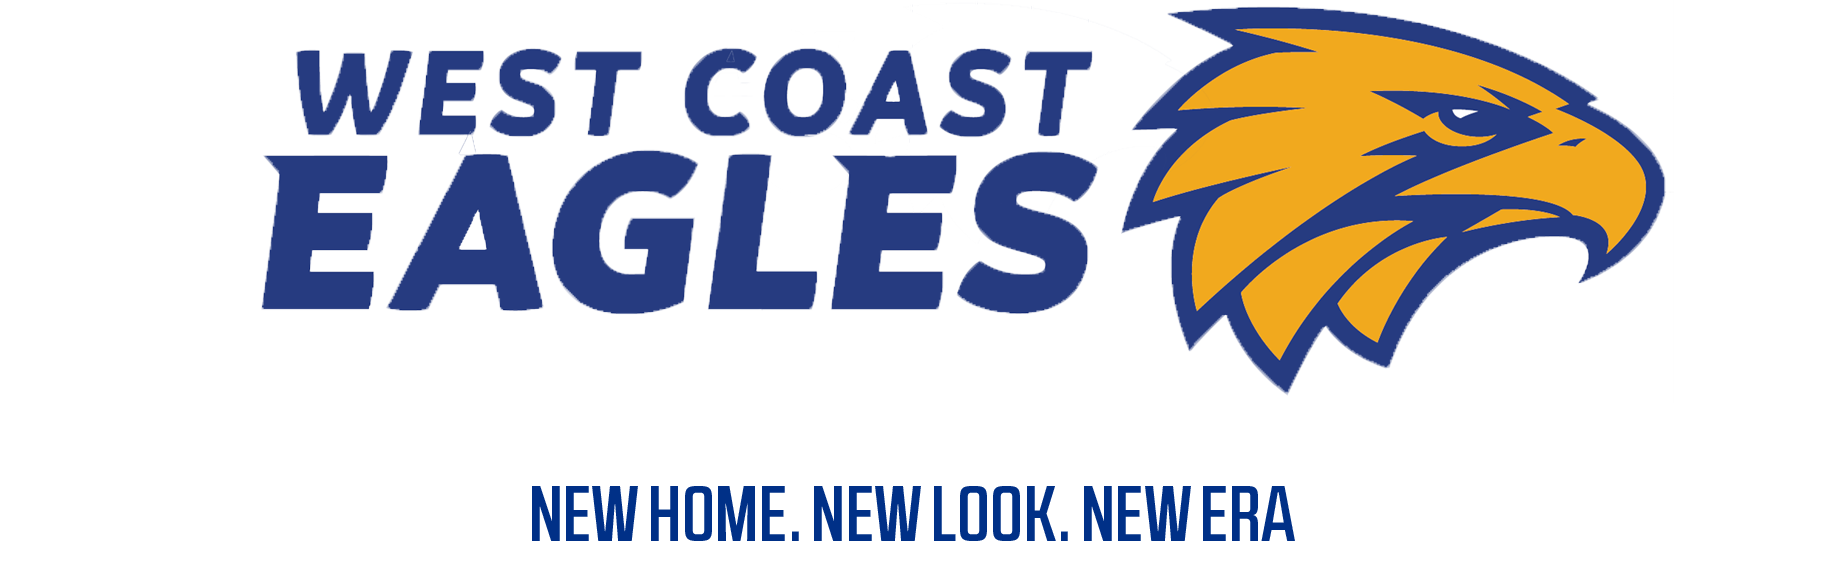 west coast eagles - 1843×567